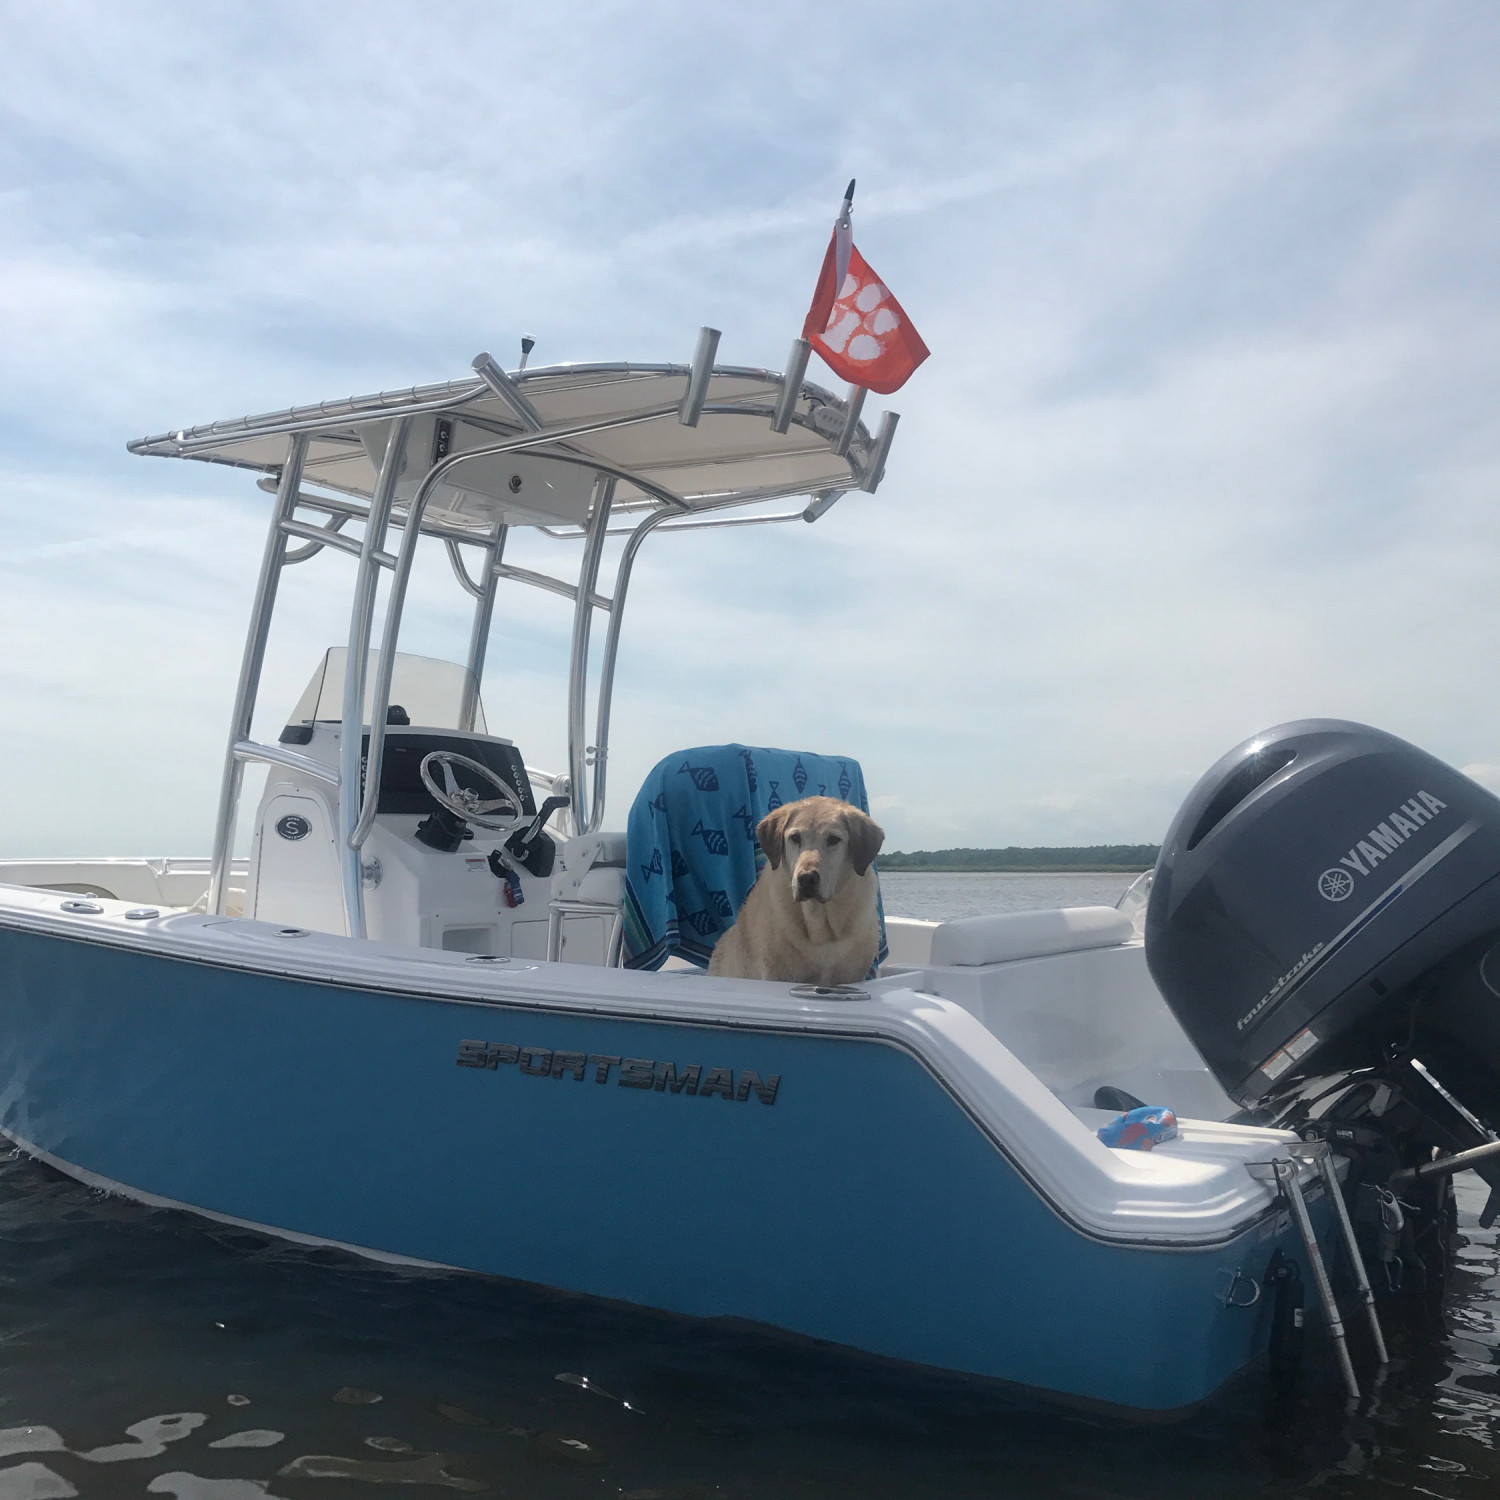 Title: This is my boat! Wood - On board their Sportsman Open 212 Center Console - Location: Myrtle Beach SC. Participating in the Photo Contest #SportsmanApril2018